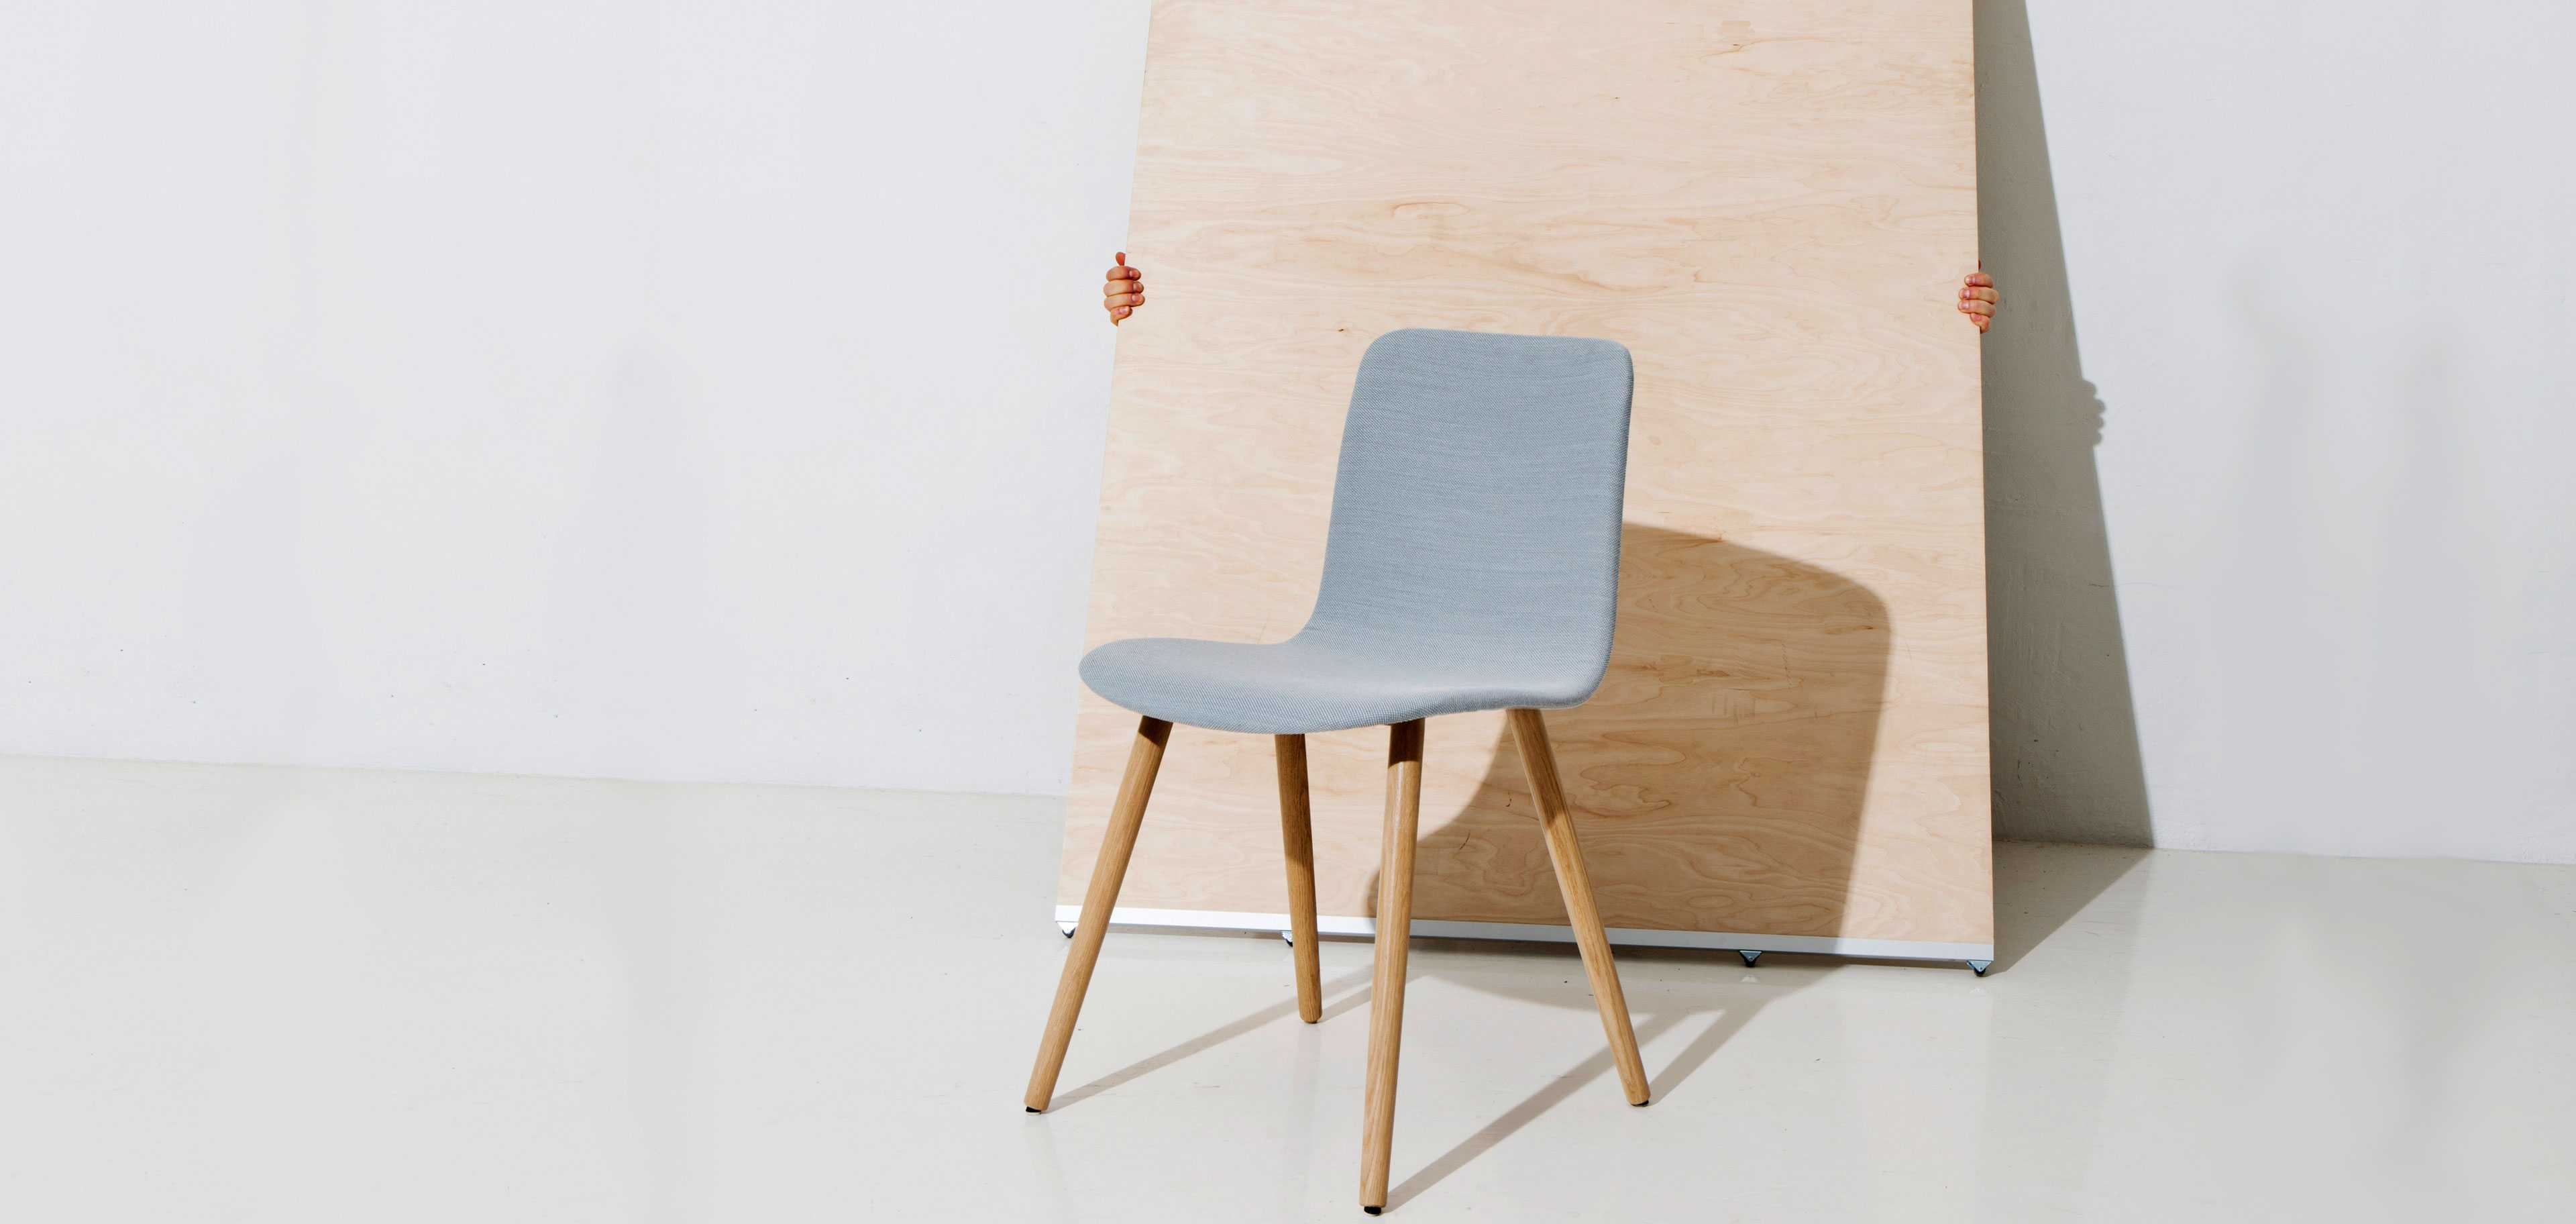 Sola chair by Martela